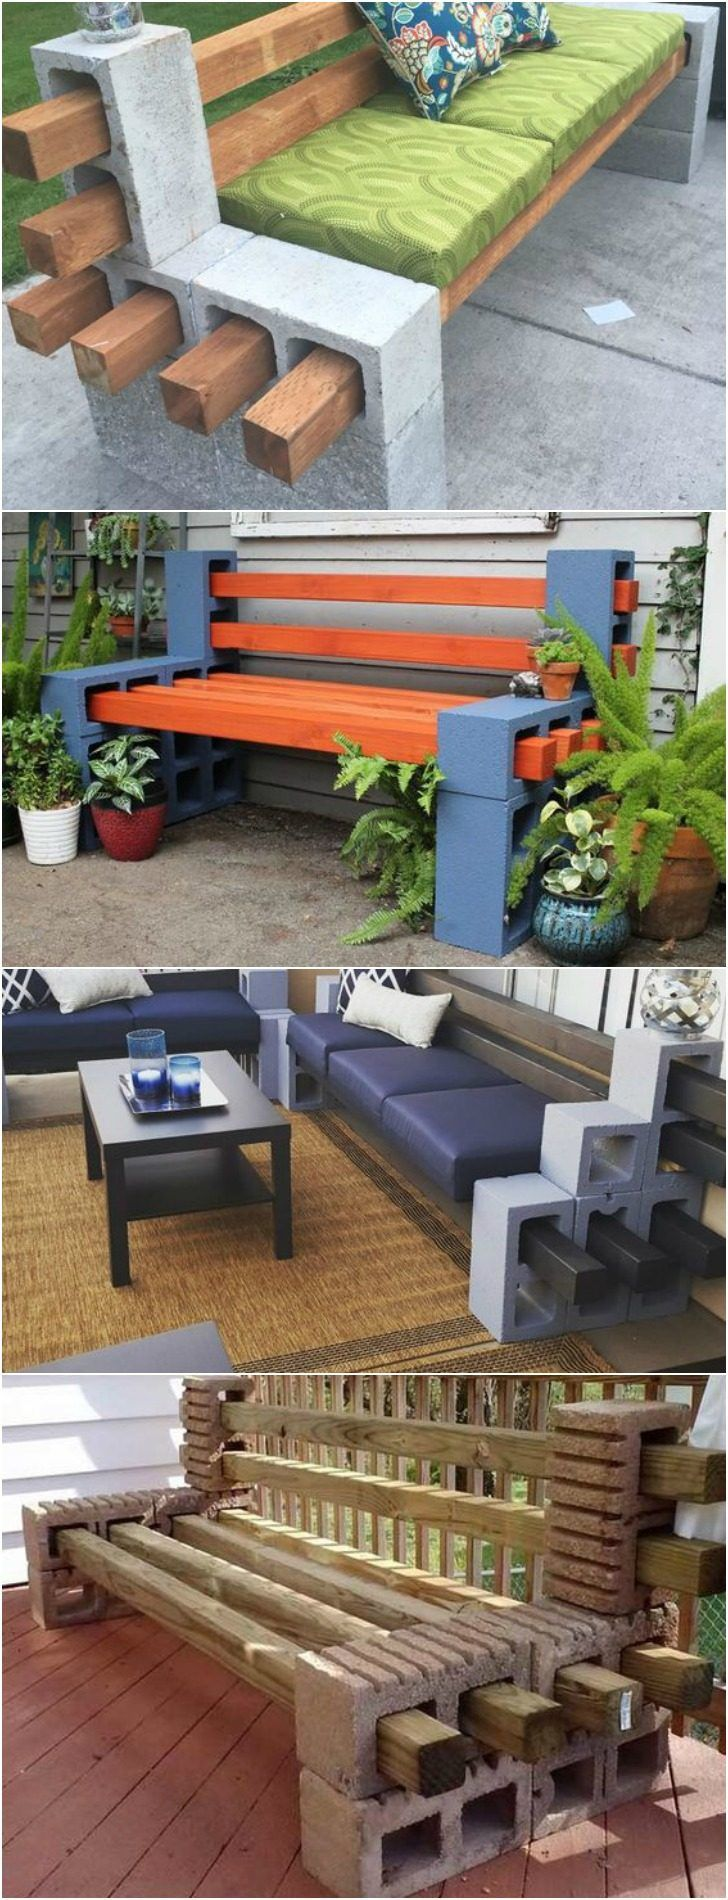 Oasis Wohnkultur Bielefeld How To Make A Cinder Block Bench 10 Amazing Ideas To Inspire You